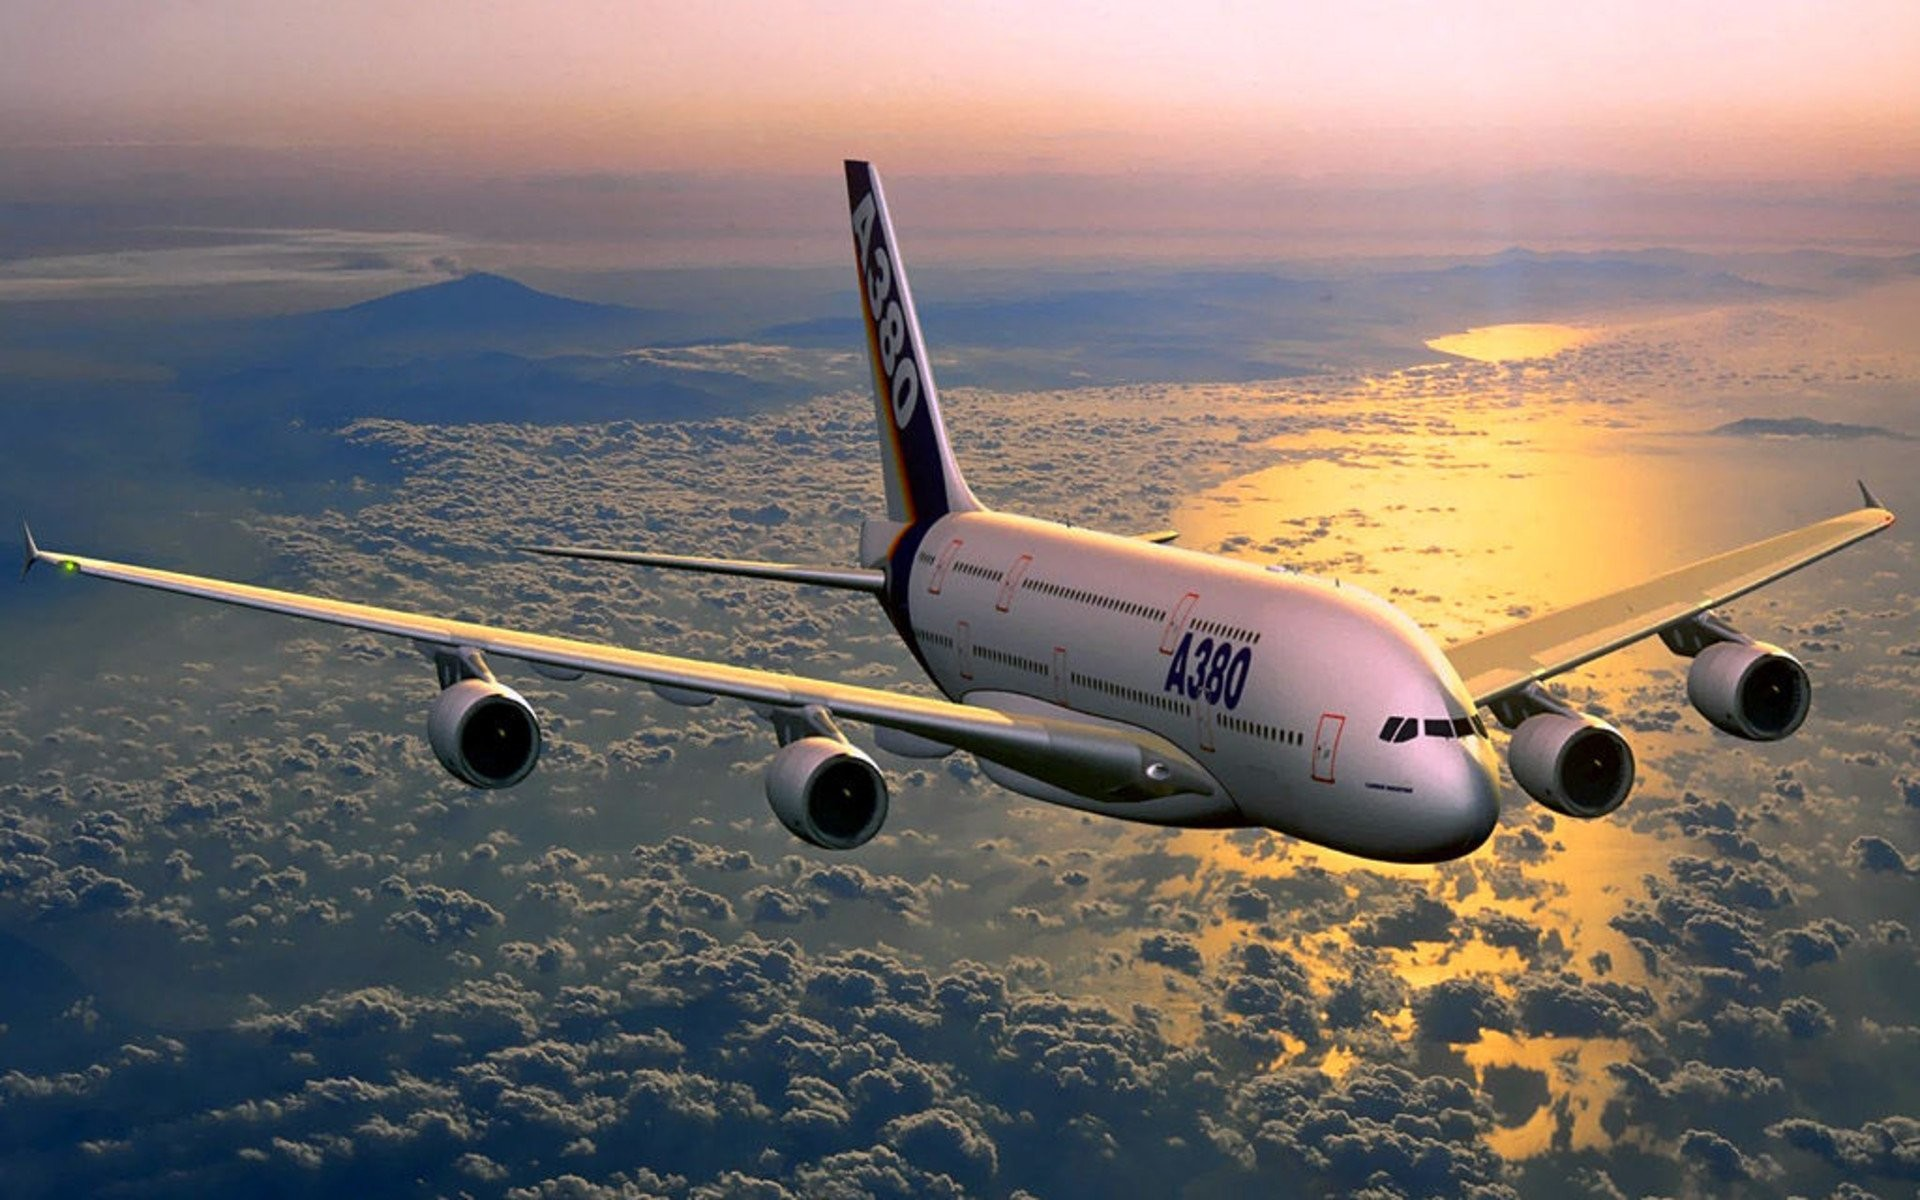 Airbus A380 Wallpaper 74 images 1920x1200